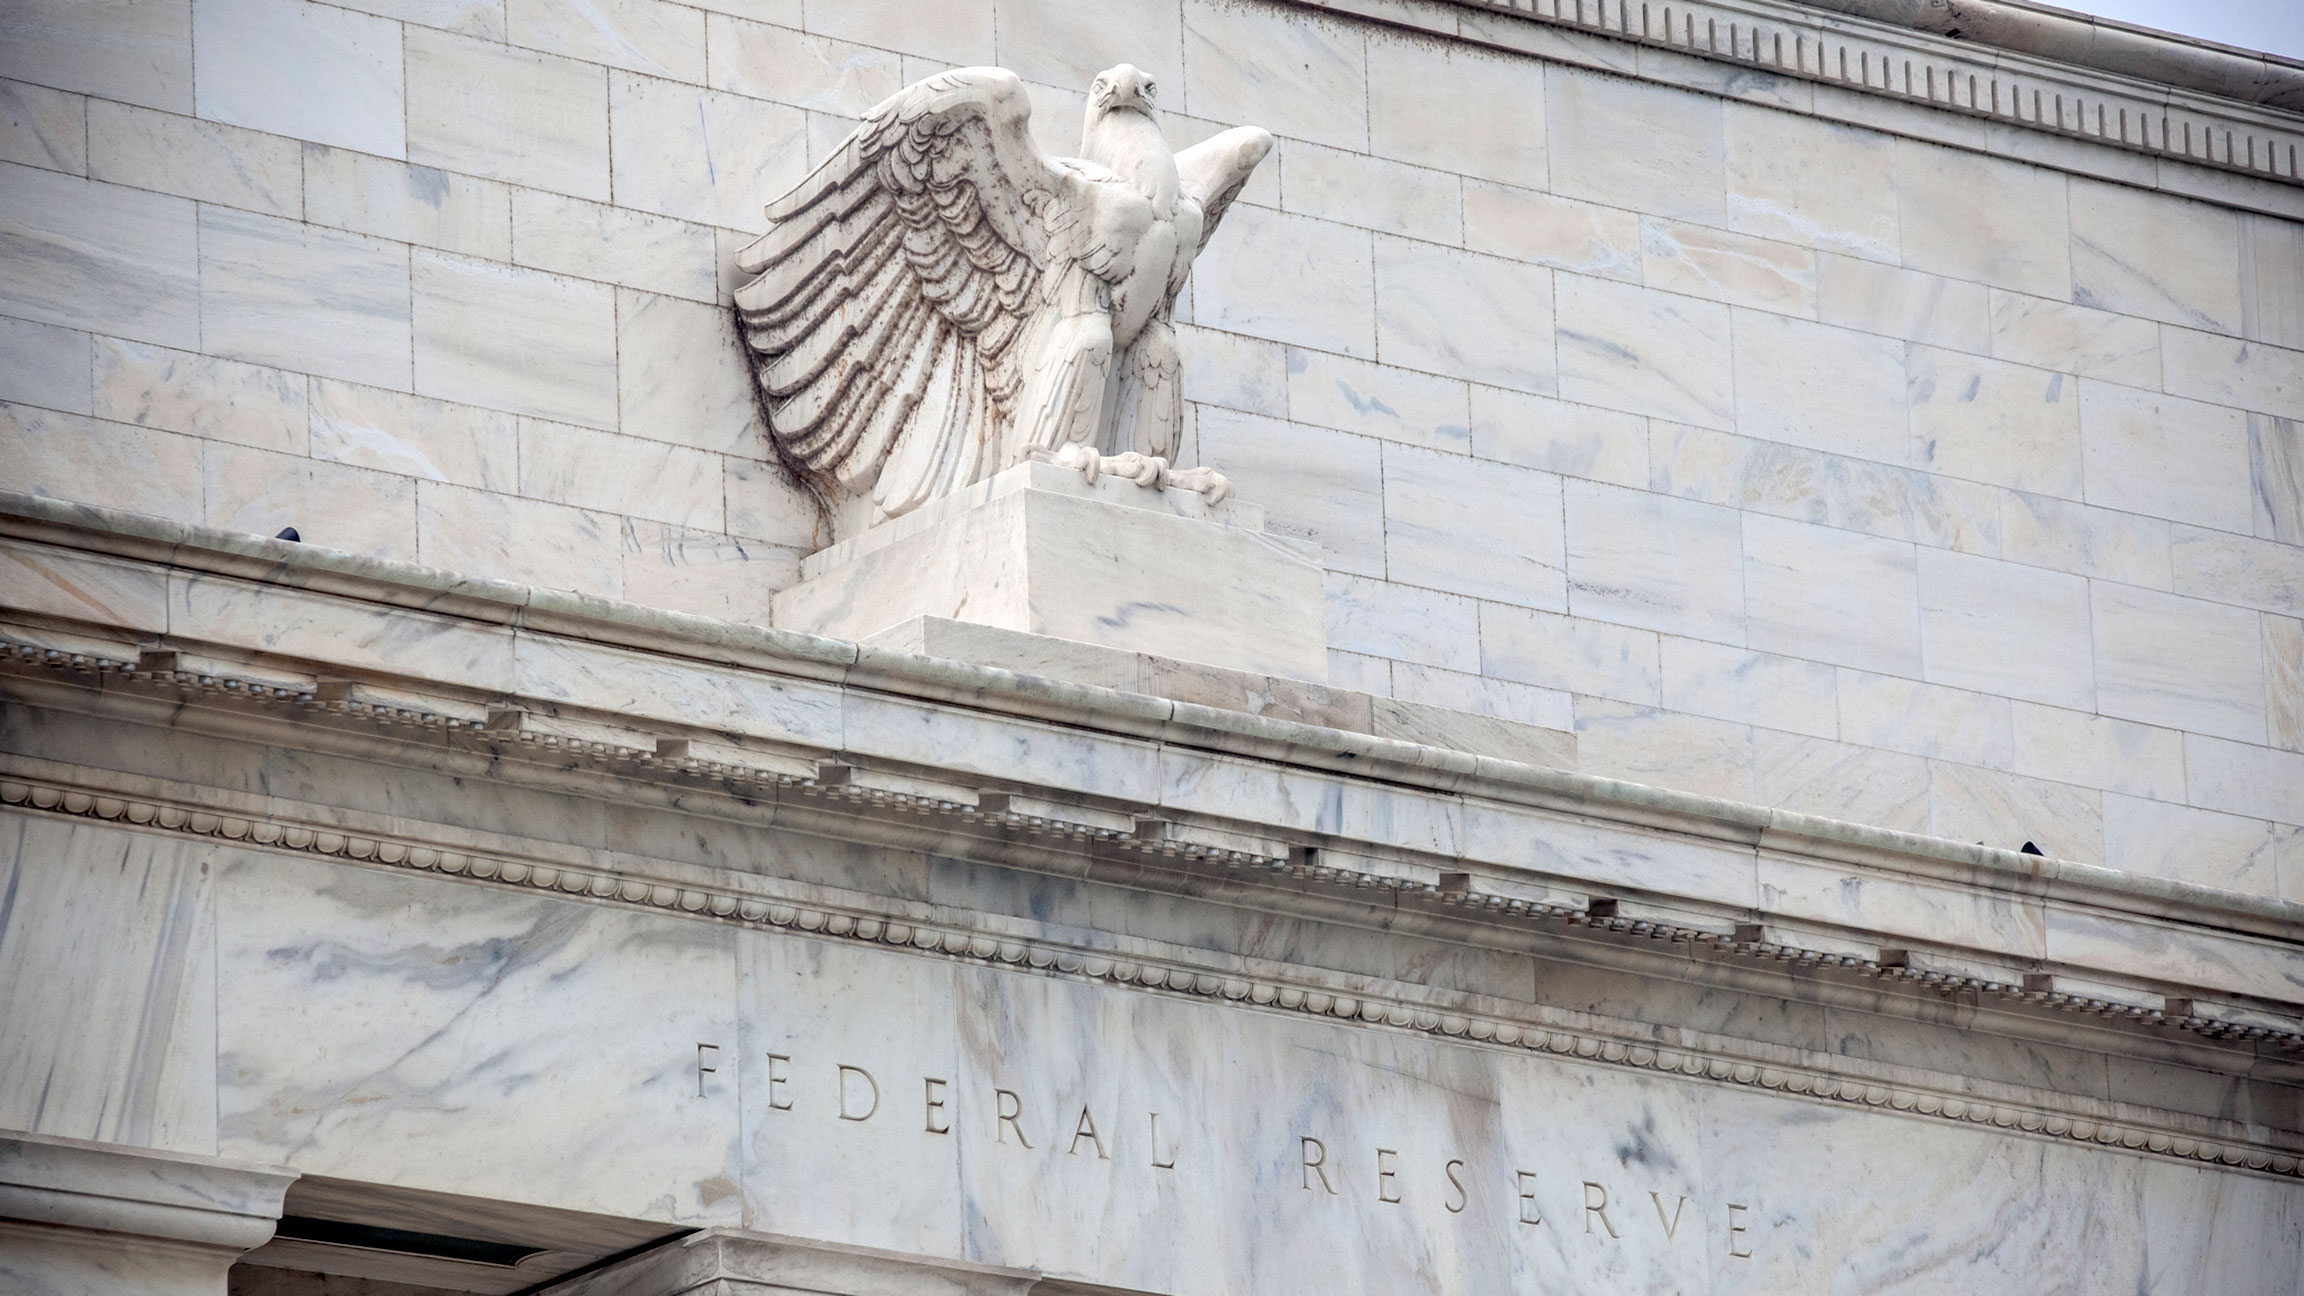 Making the Federal Reserve less relevant